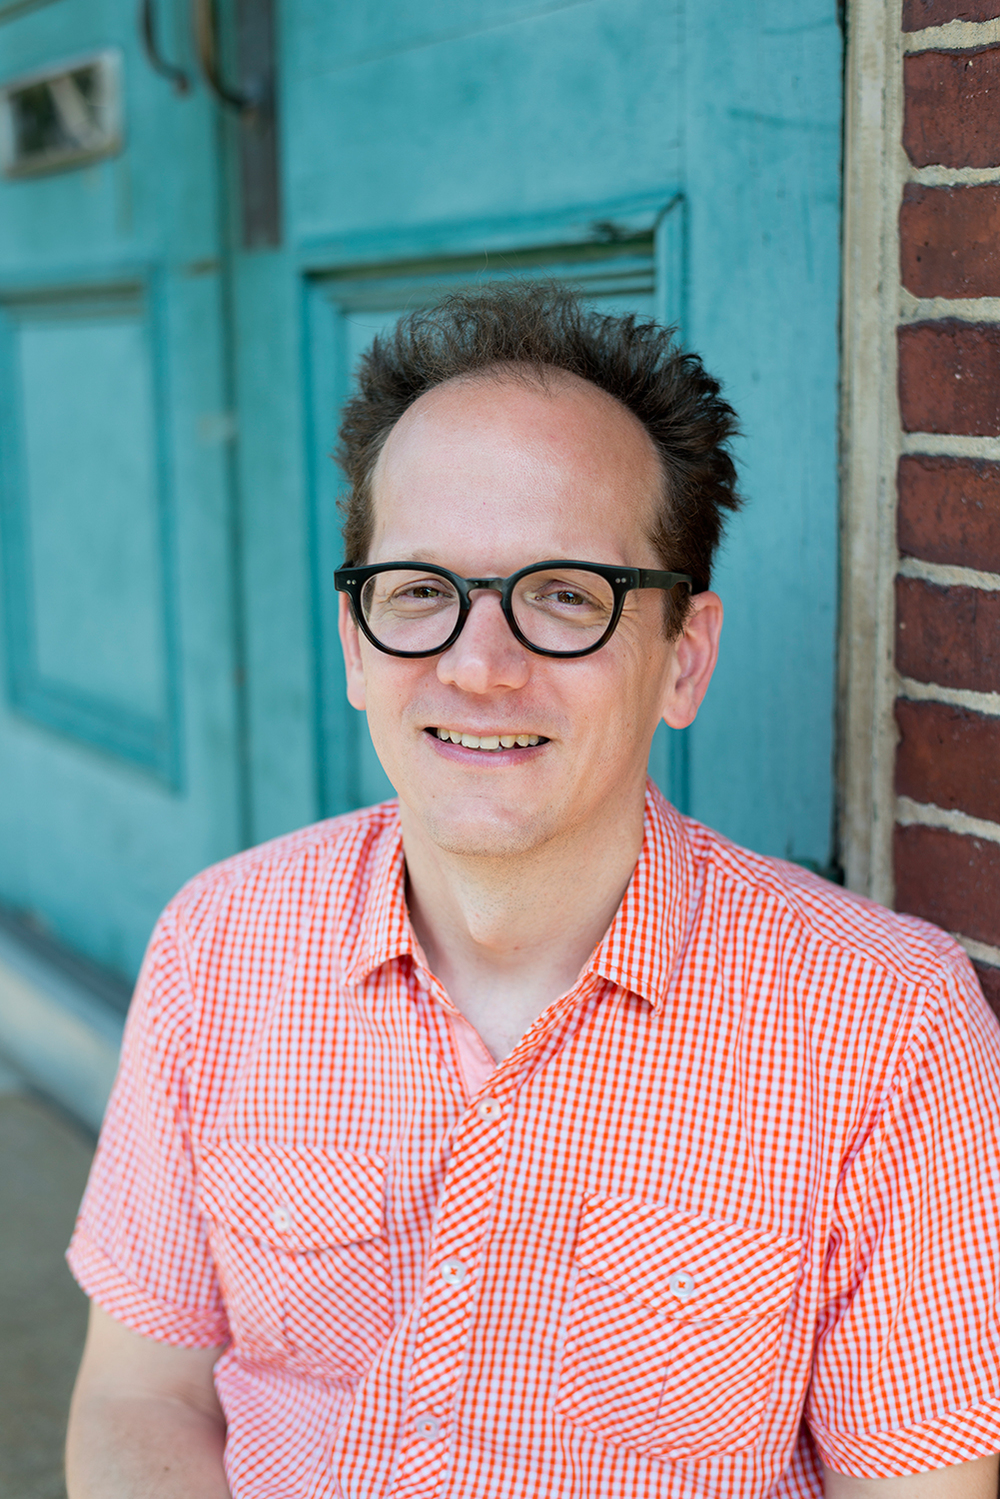 Erik P. Kraft   is an award-winning children's book author and illustrator. He received his MFA in Writing from Vermont College Of Fine Arts in 2000. He draws the comic   Chicken, You're The Greatest!   (which is not actually about chickens) and writes the blog/narrates the podcast   Too Many Chickens!   (which actually is about chickens). He also does things that may or may not be considered comedy, depending on who you ask.   www.erikpkraft.com | www.toomanychickens.com | cytg.tumblr.com